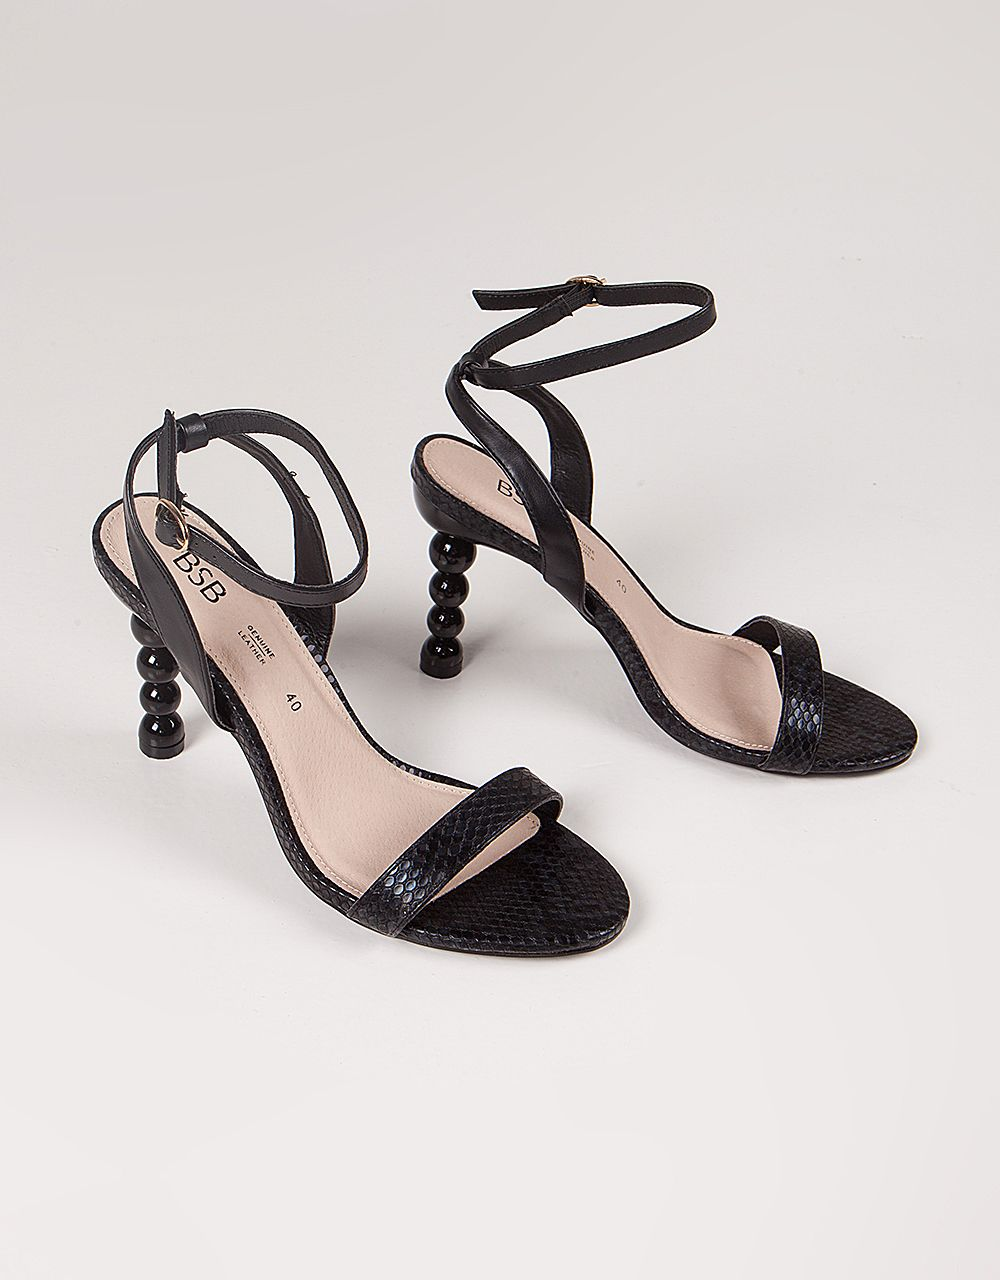 GEO-HEEL SANDALS WITH ANKLE STRAP